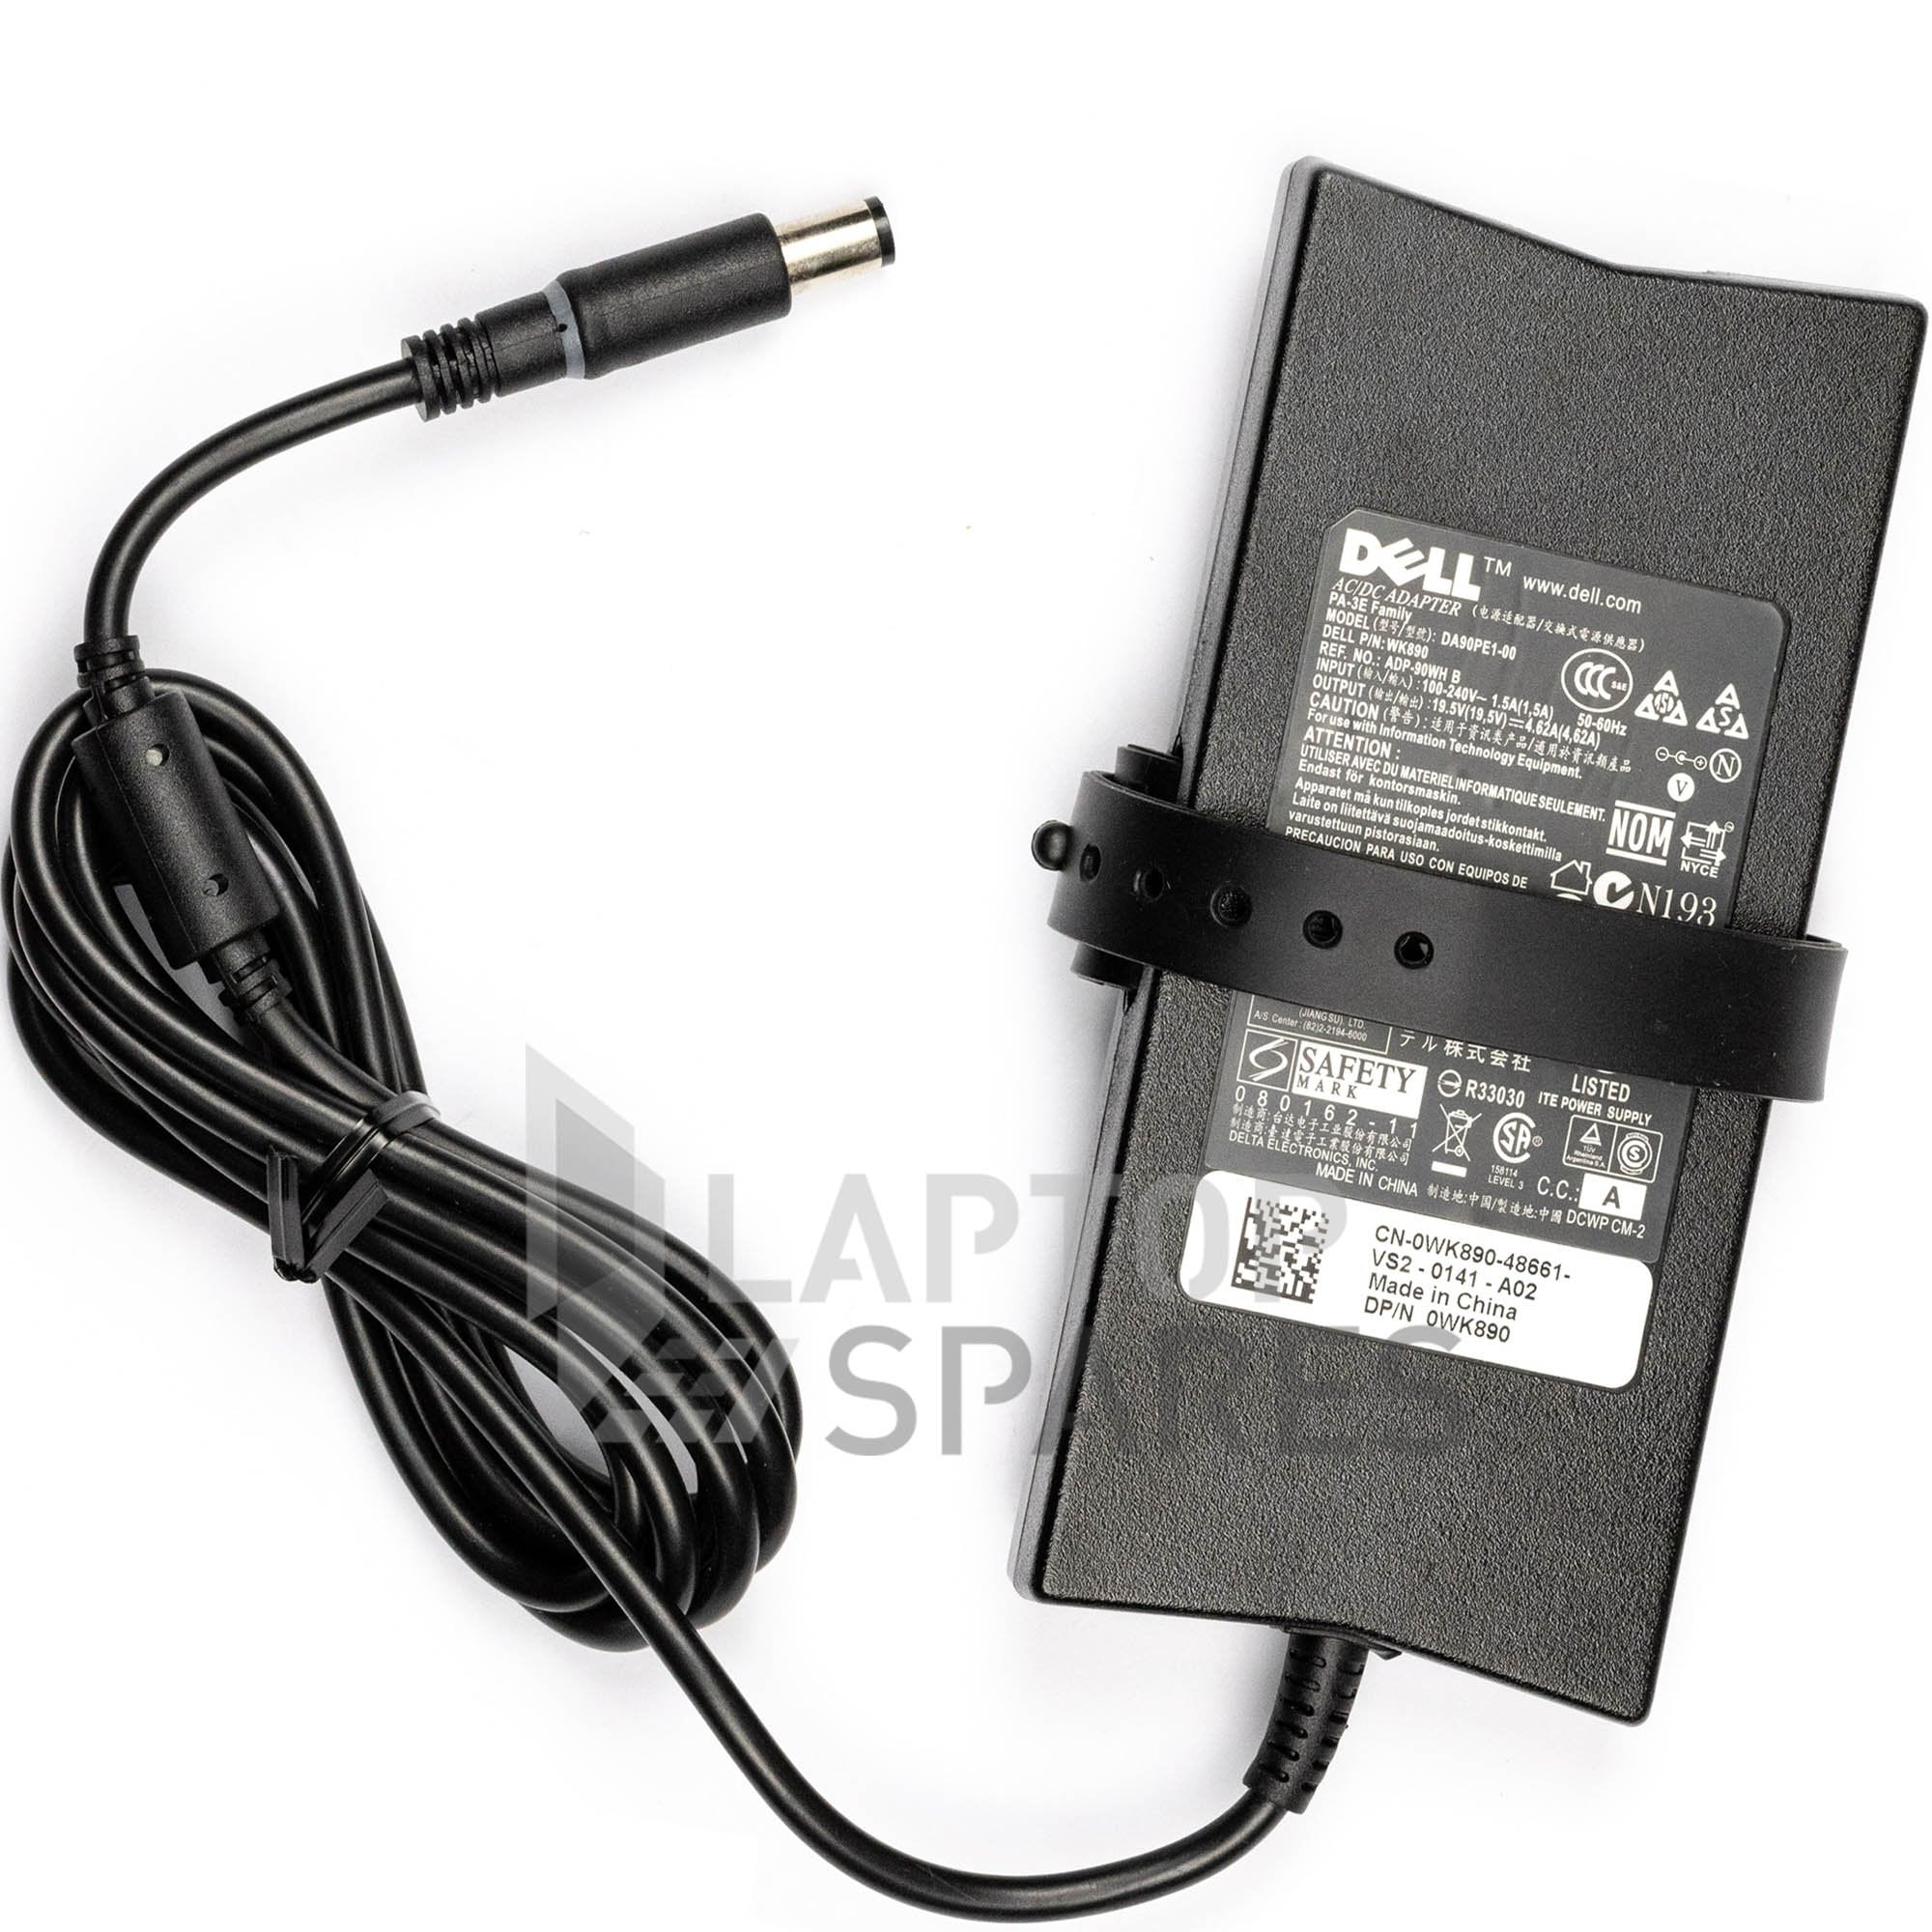 Dell Studio 14z Laptop Slim AC Adapter Charger